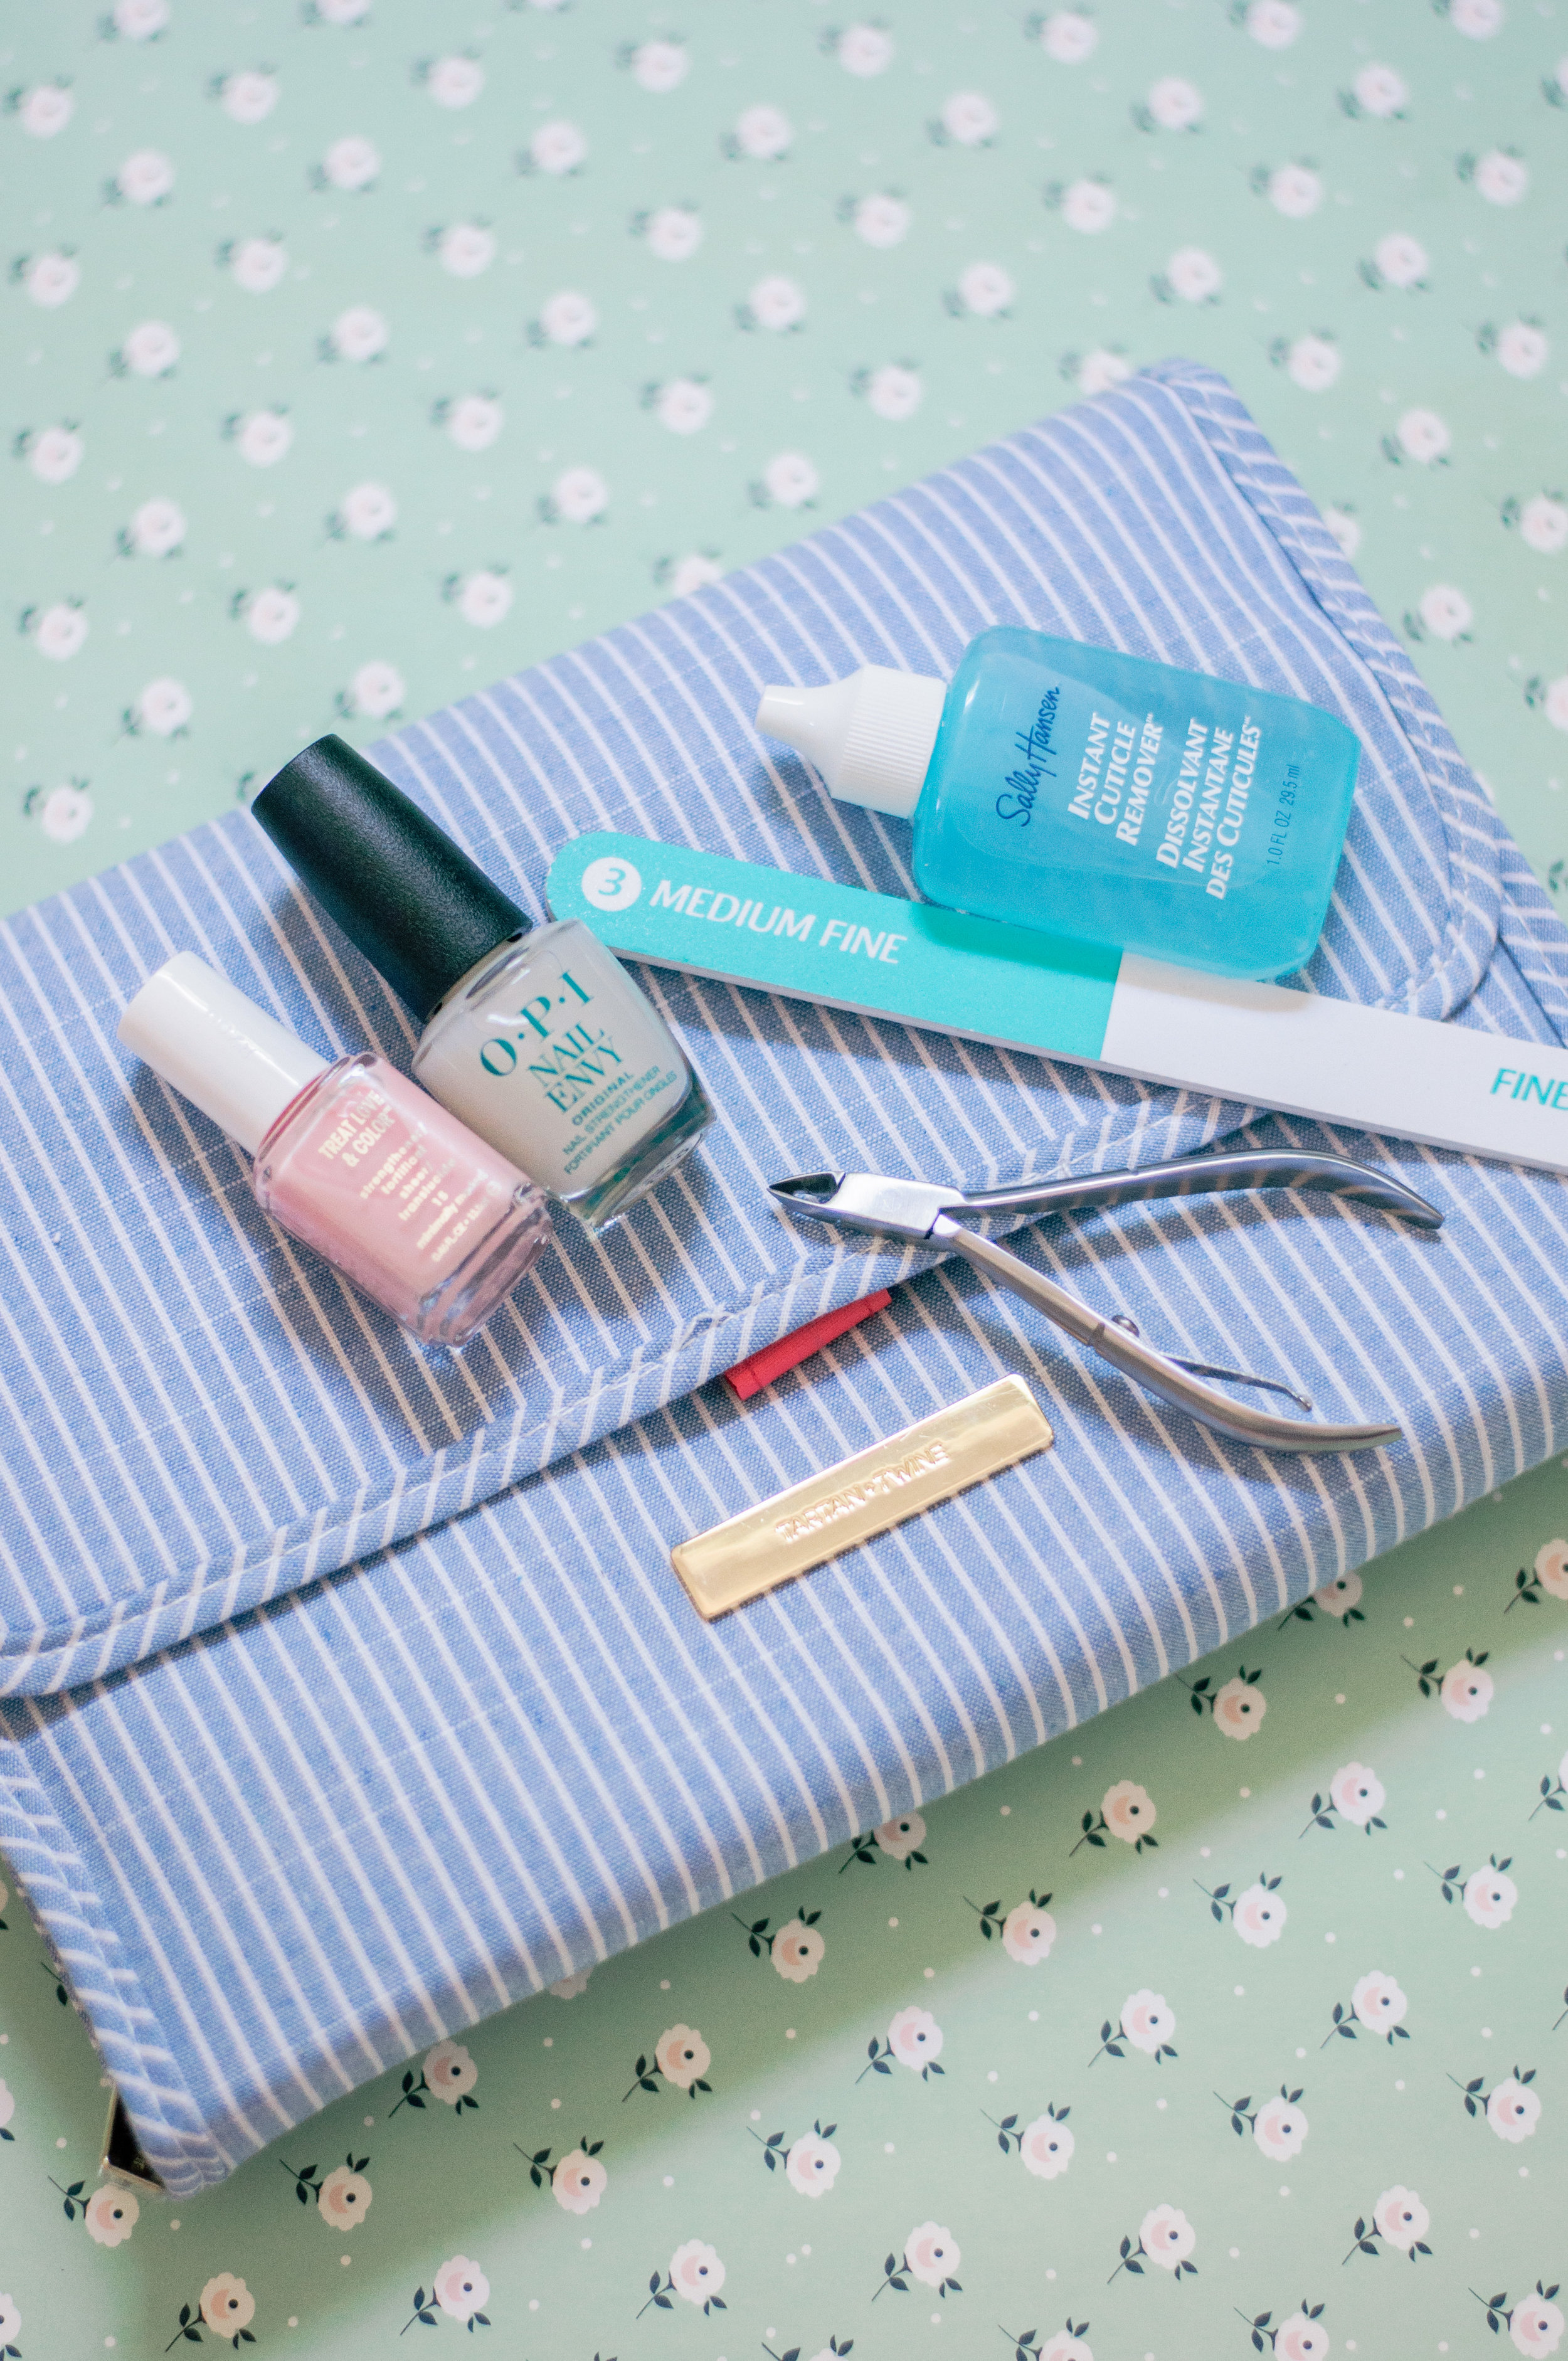 DIY At Home Manicure and Pedicure for Natural Nails